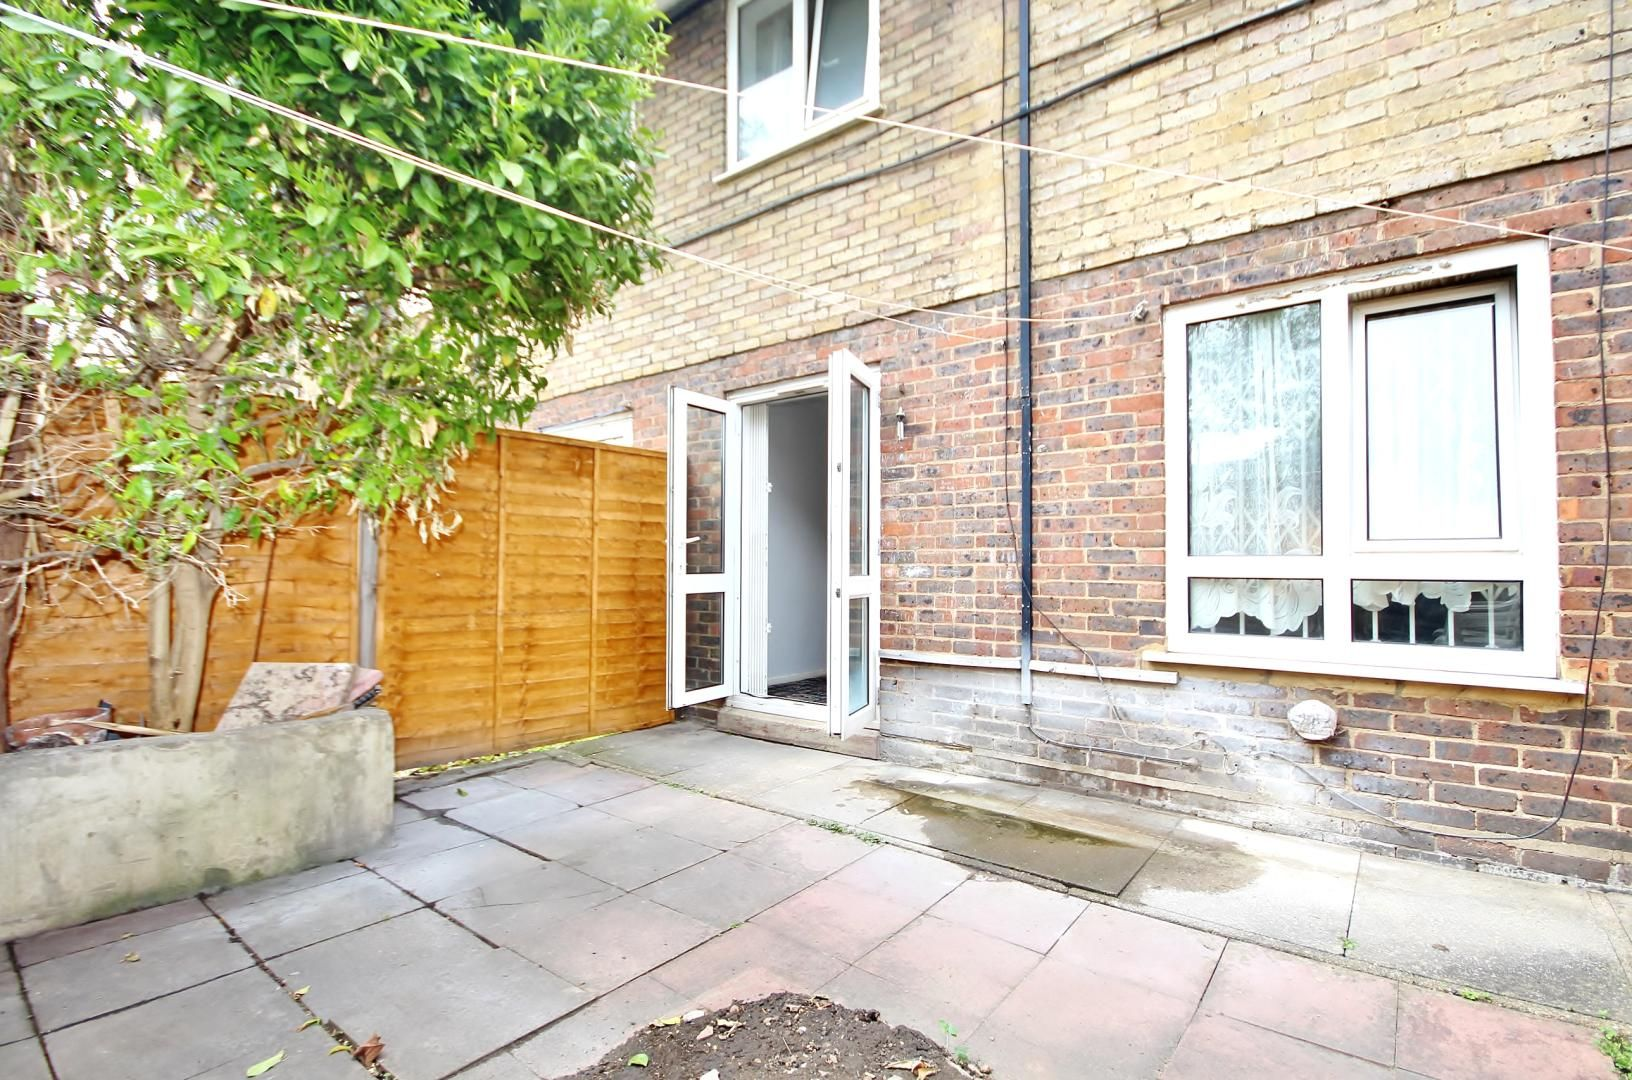 3 bed flat for sale in Thorogood Gardens, E15